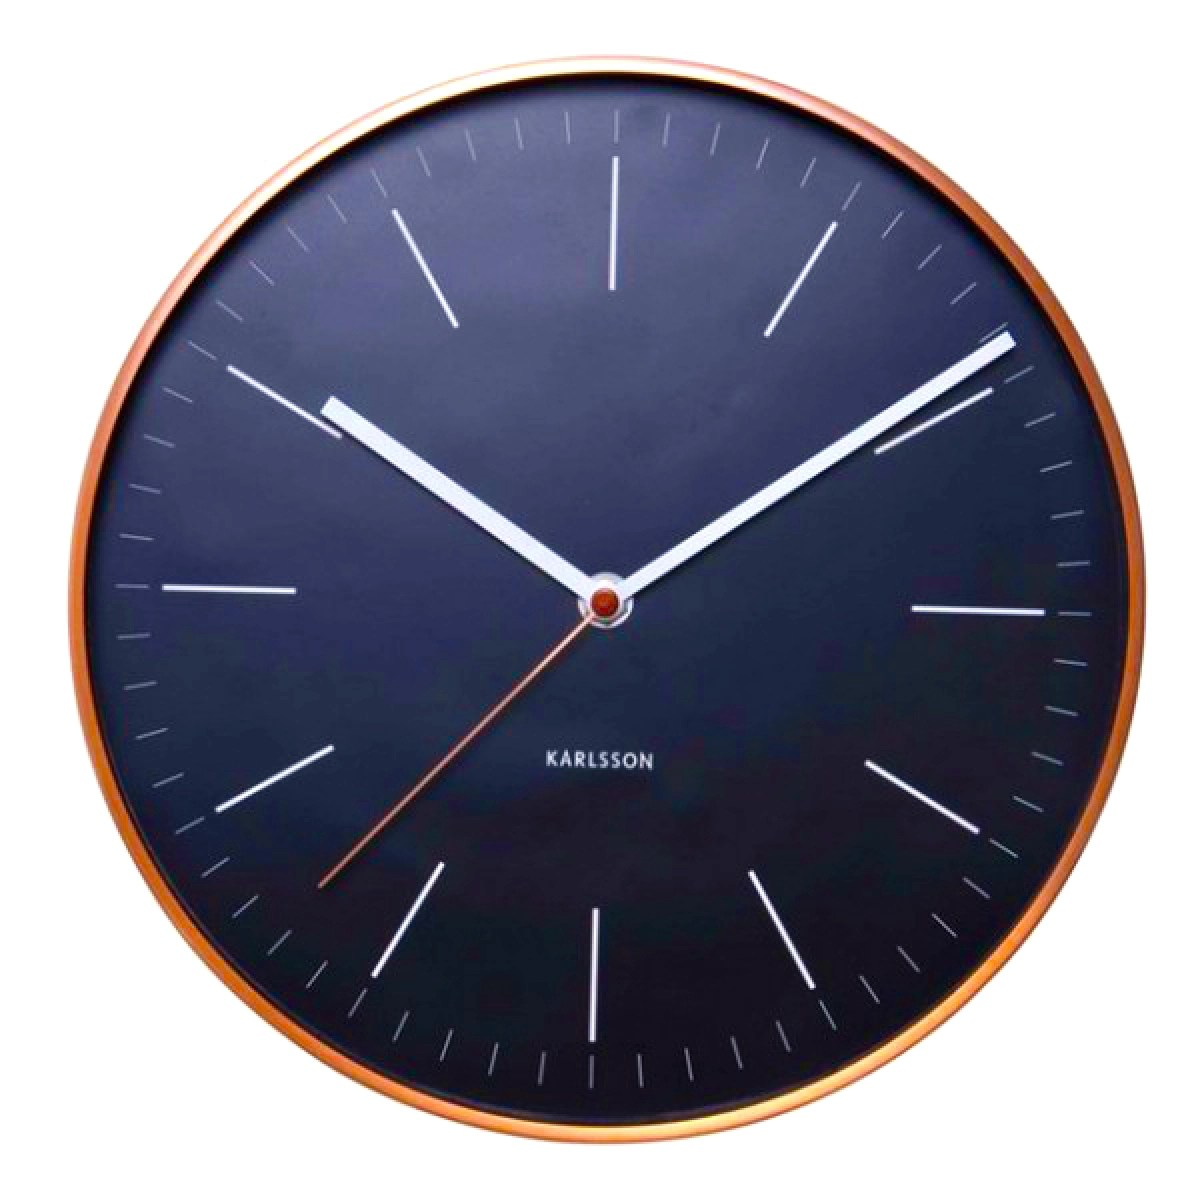 Karlsson Copper Wall Clock Watch Black Design